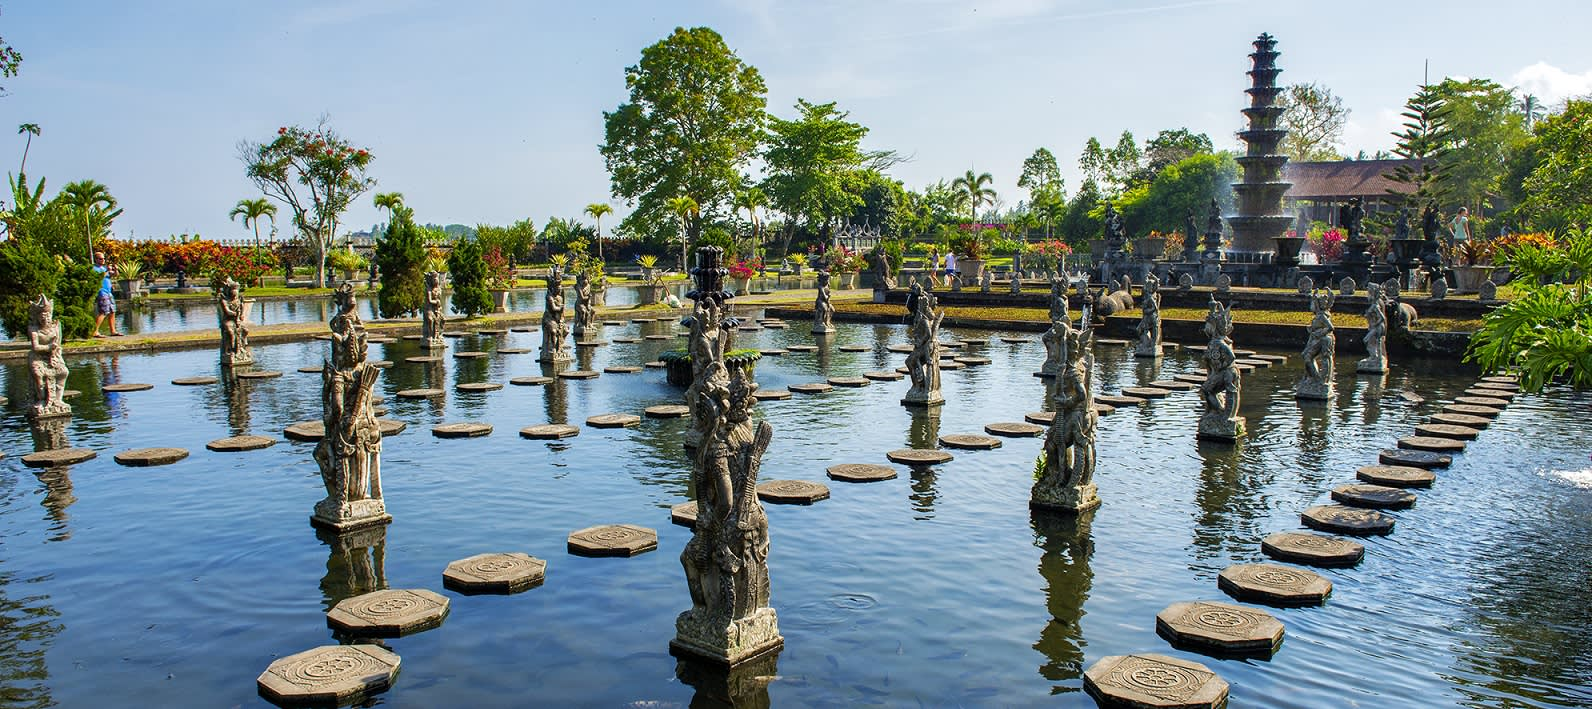 Things to do in Indonesia - visit the Tirtagangga temple - Indonesia travel guide